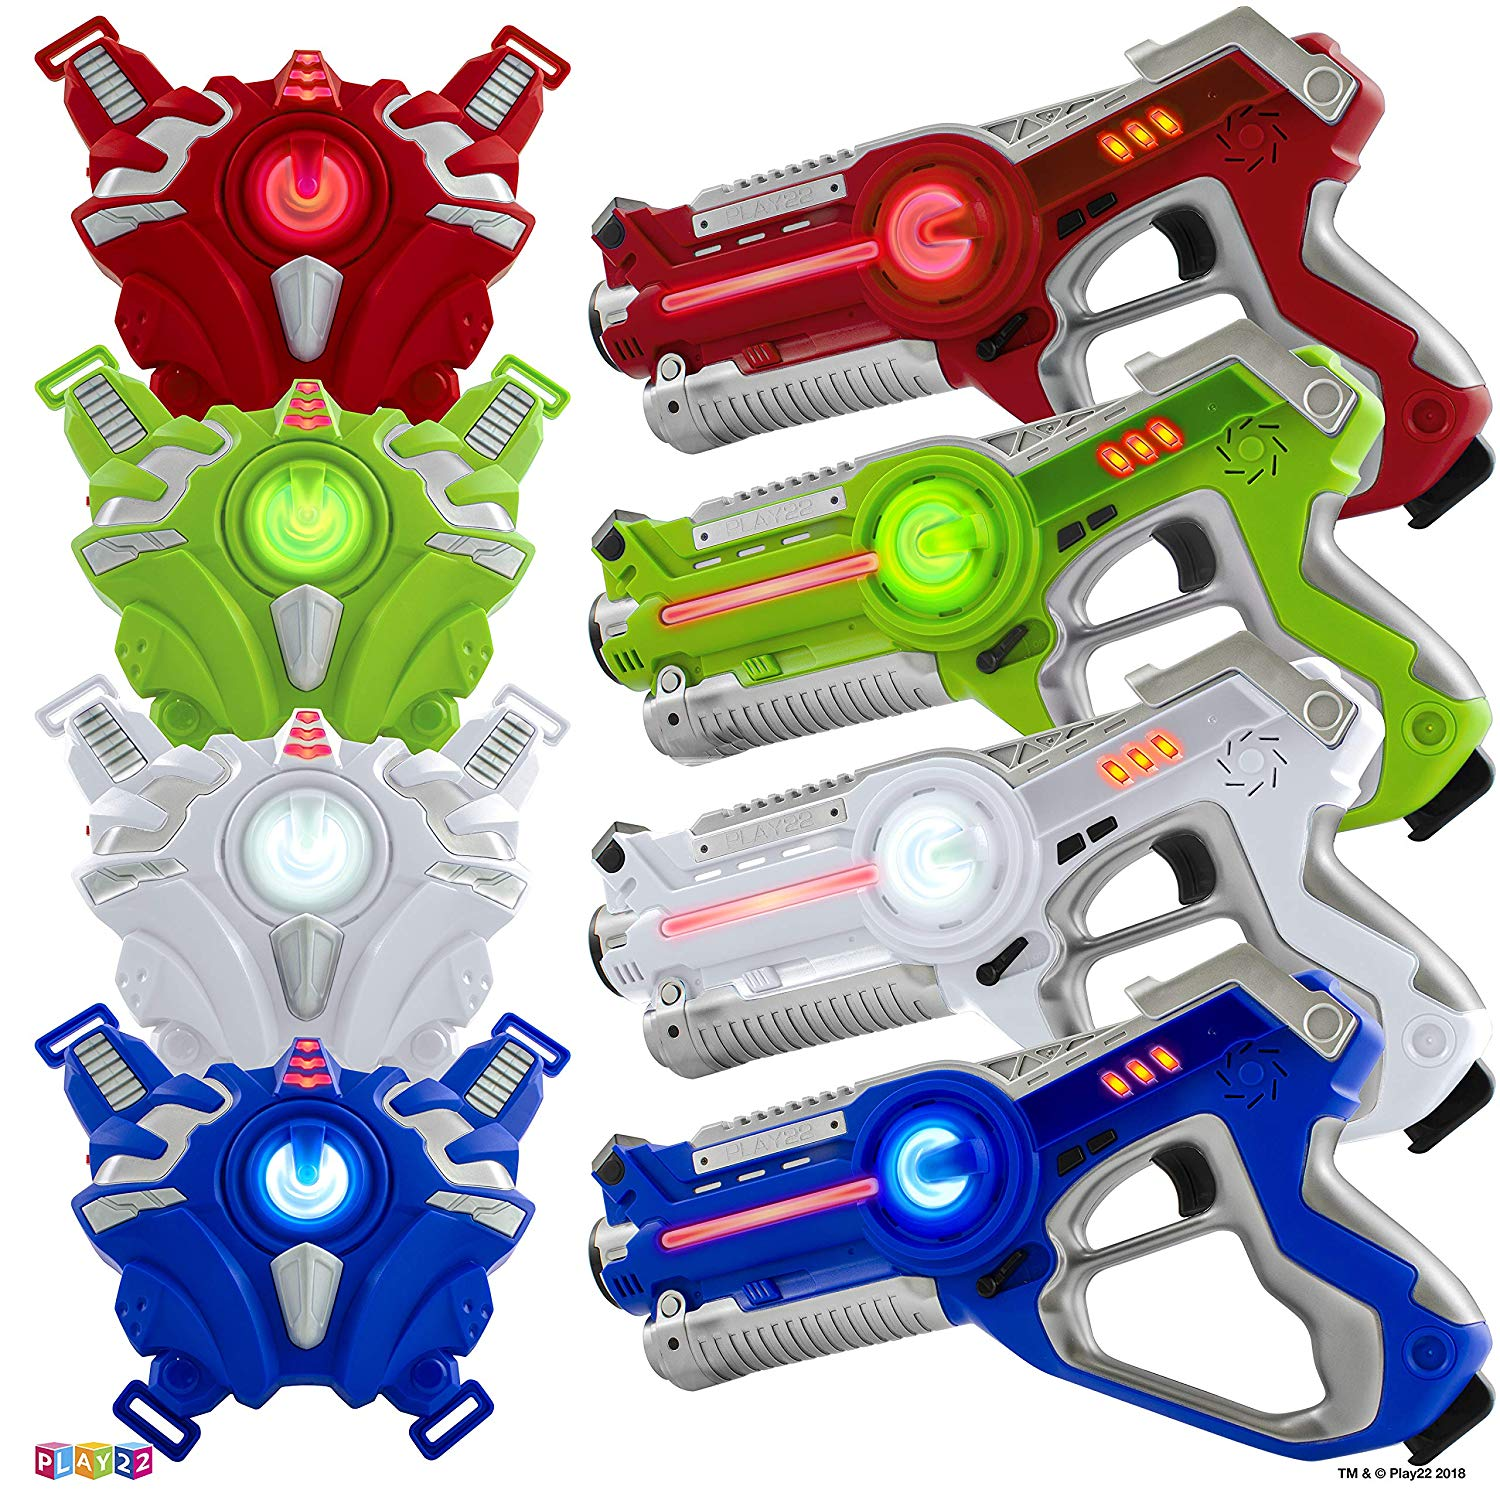 Play22 Infrared Laser Tag Set of 4 Guns and 4 Vests